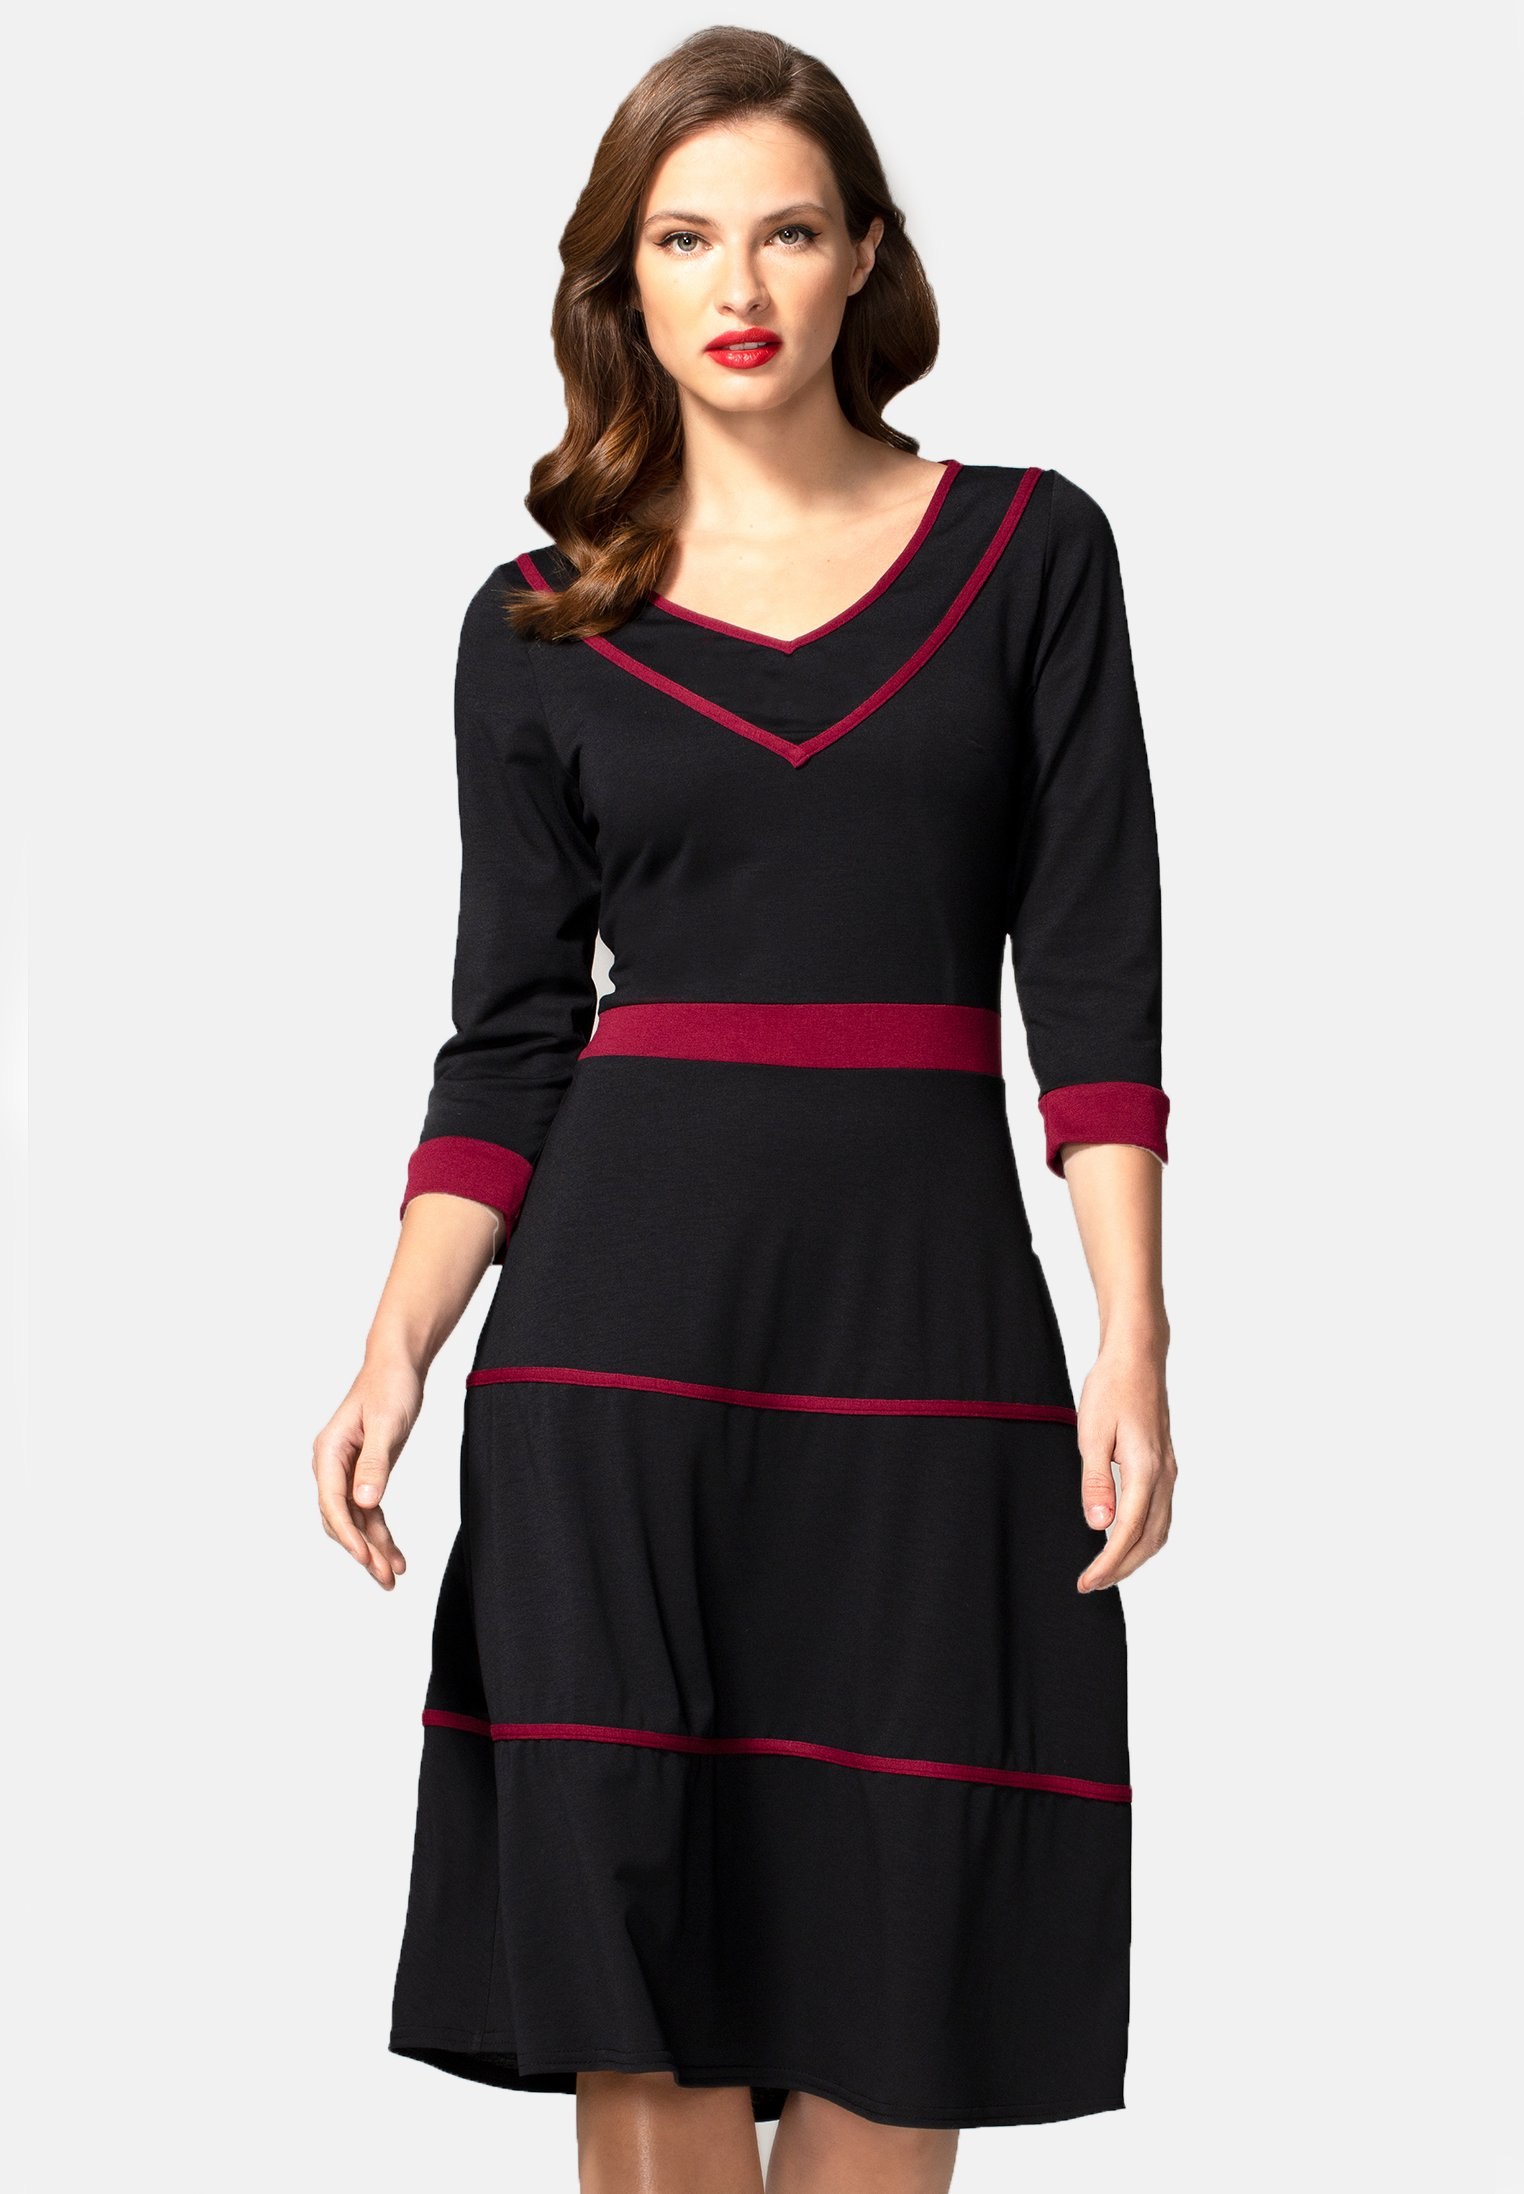 Good Service Women's Clothing HotSquash V NECK DRESS WITH CONTRAST PIPING Day dress black and burgundy HO9x0MuWN